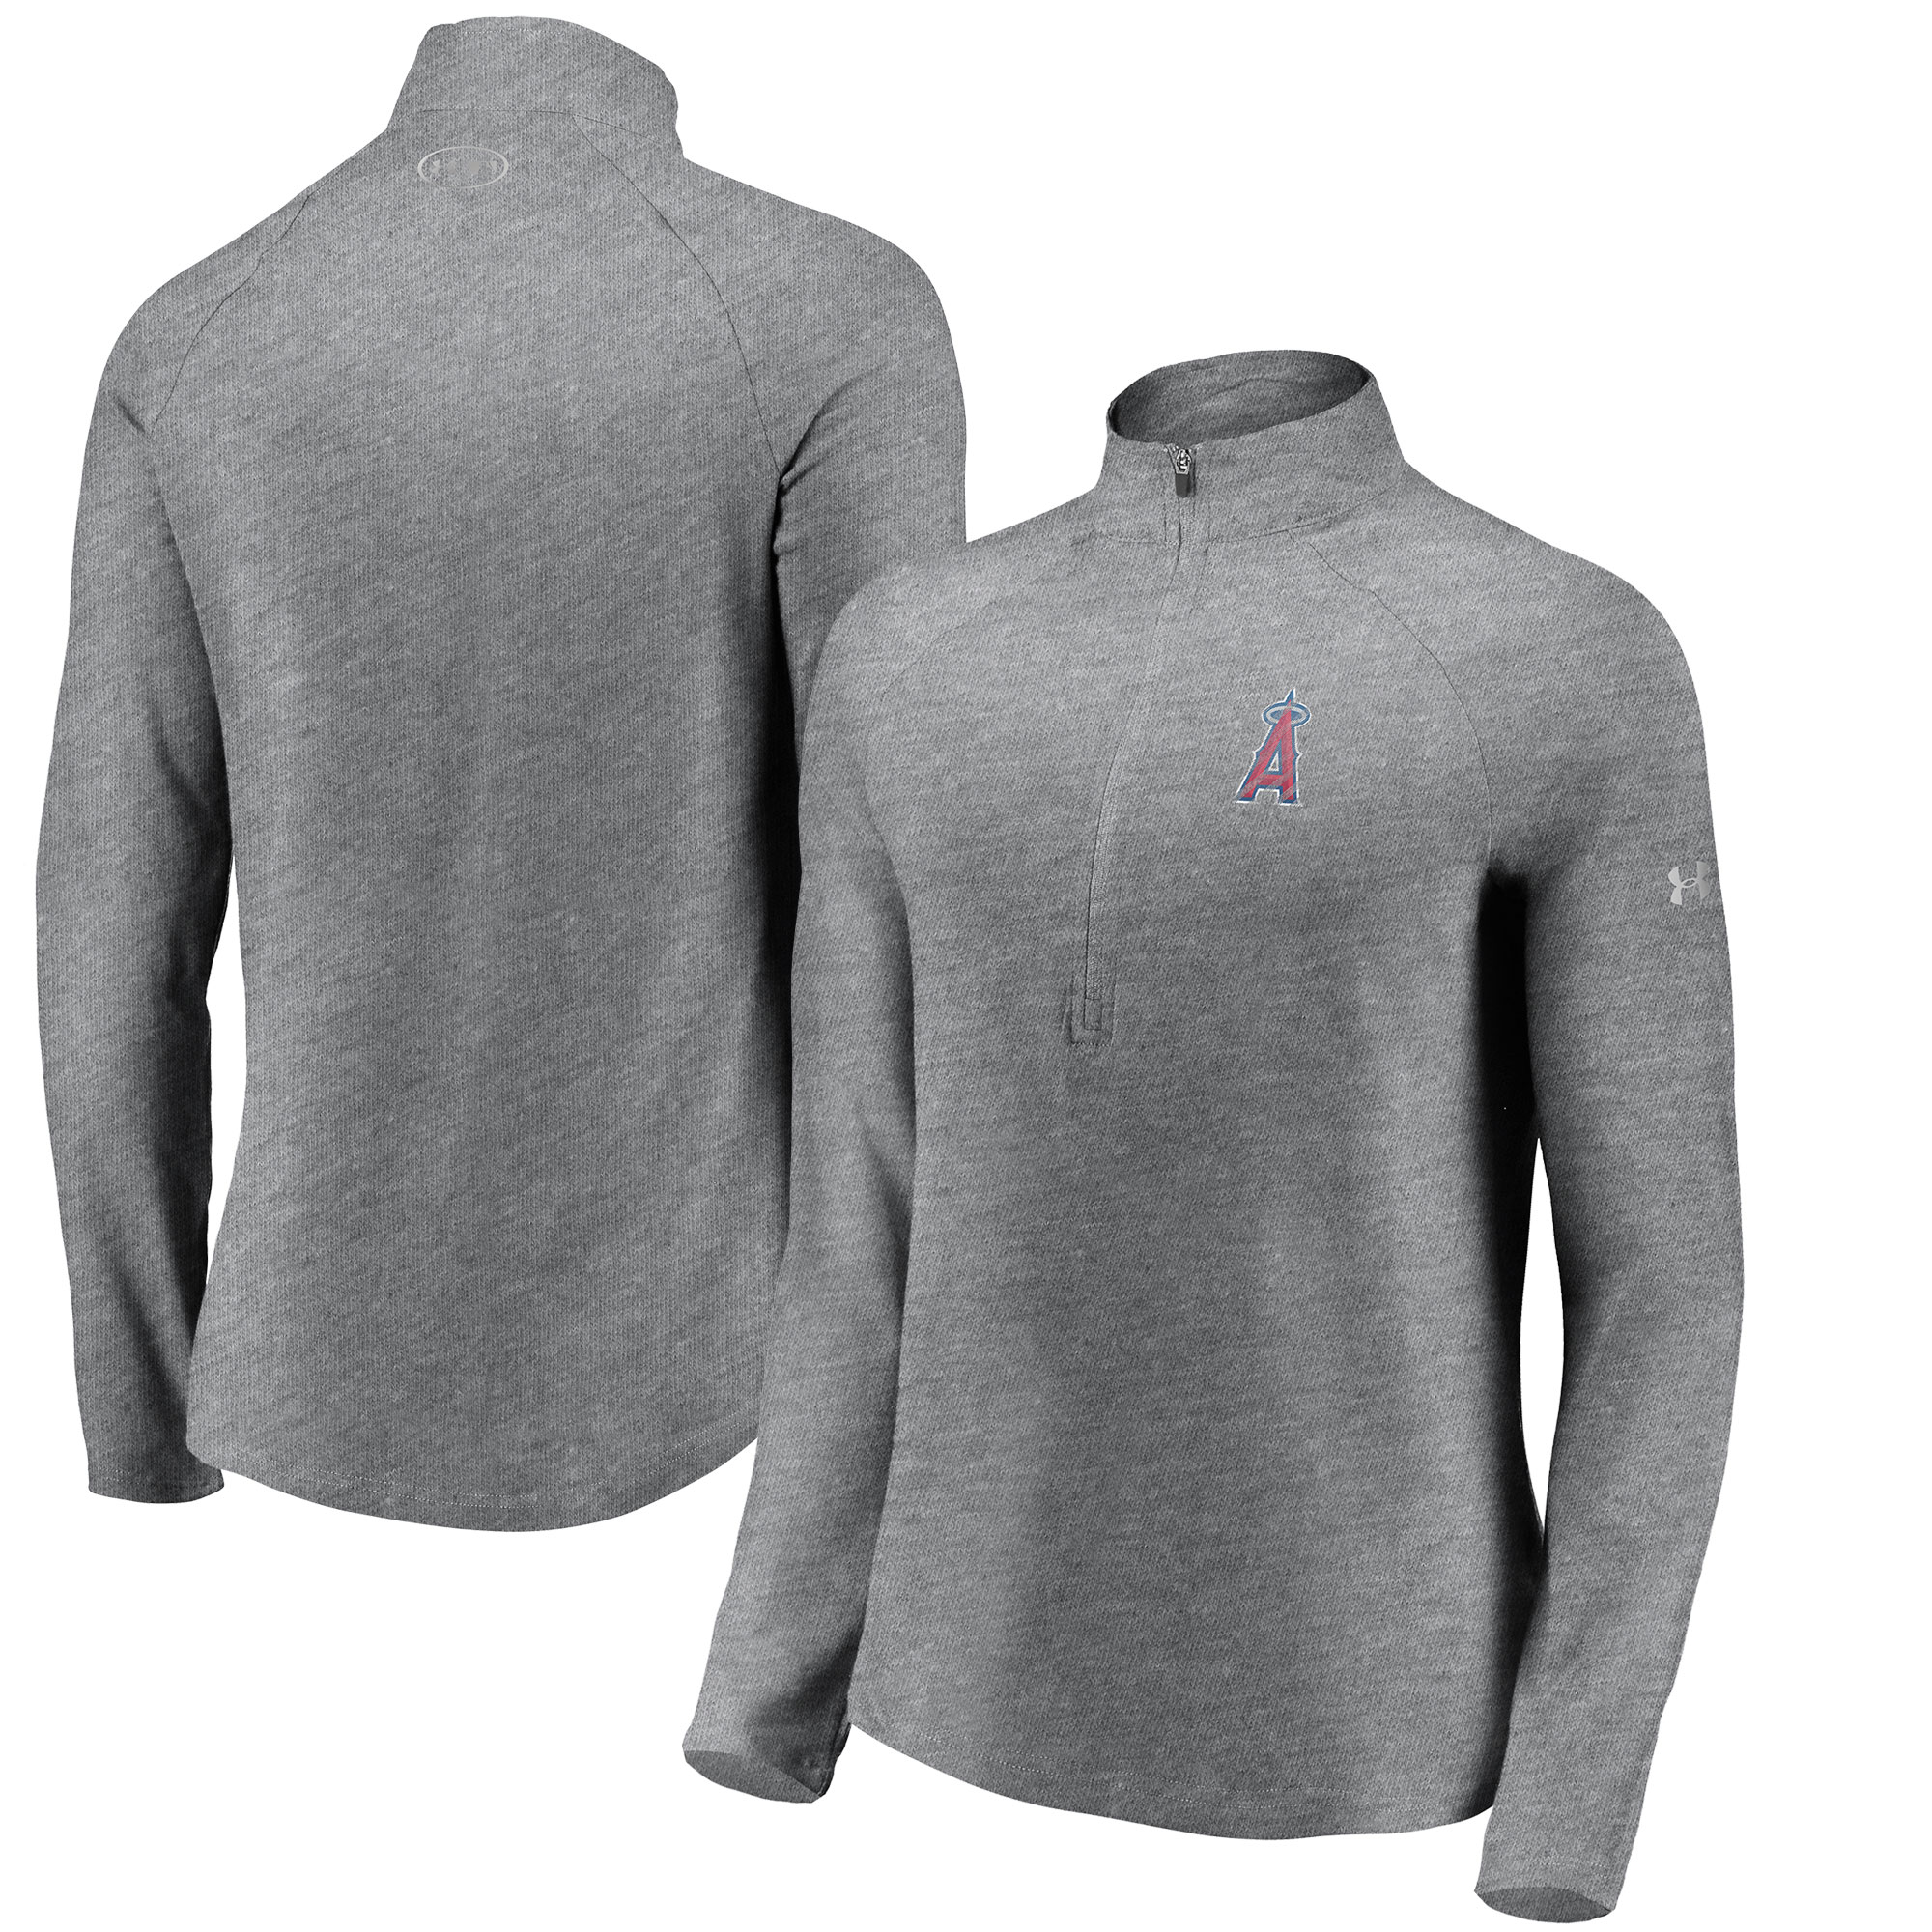 Los Angeles Angels Under Armour Women's Passion Alternate Performance Tri-Blend Raglan Half-Zip Pullover Jacket - Heathered Gray